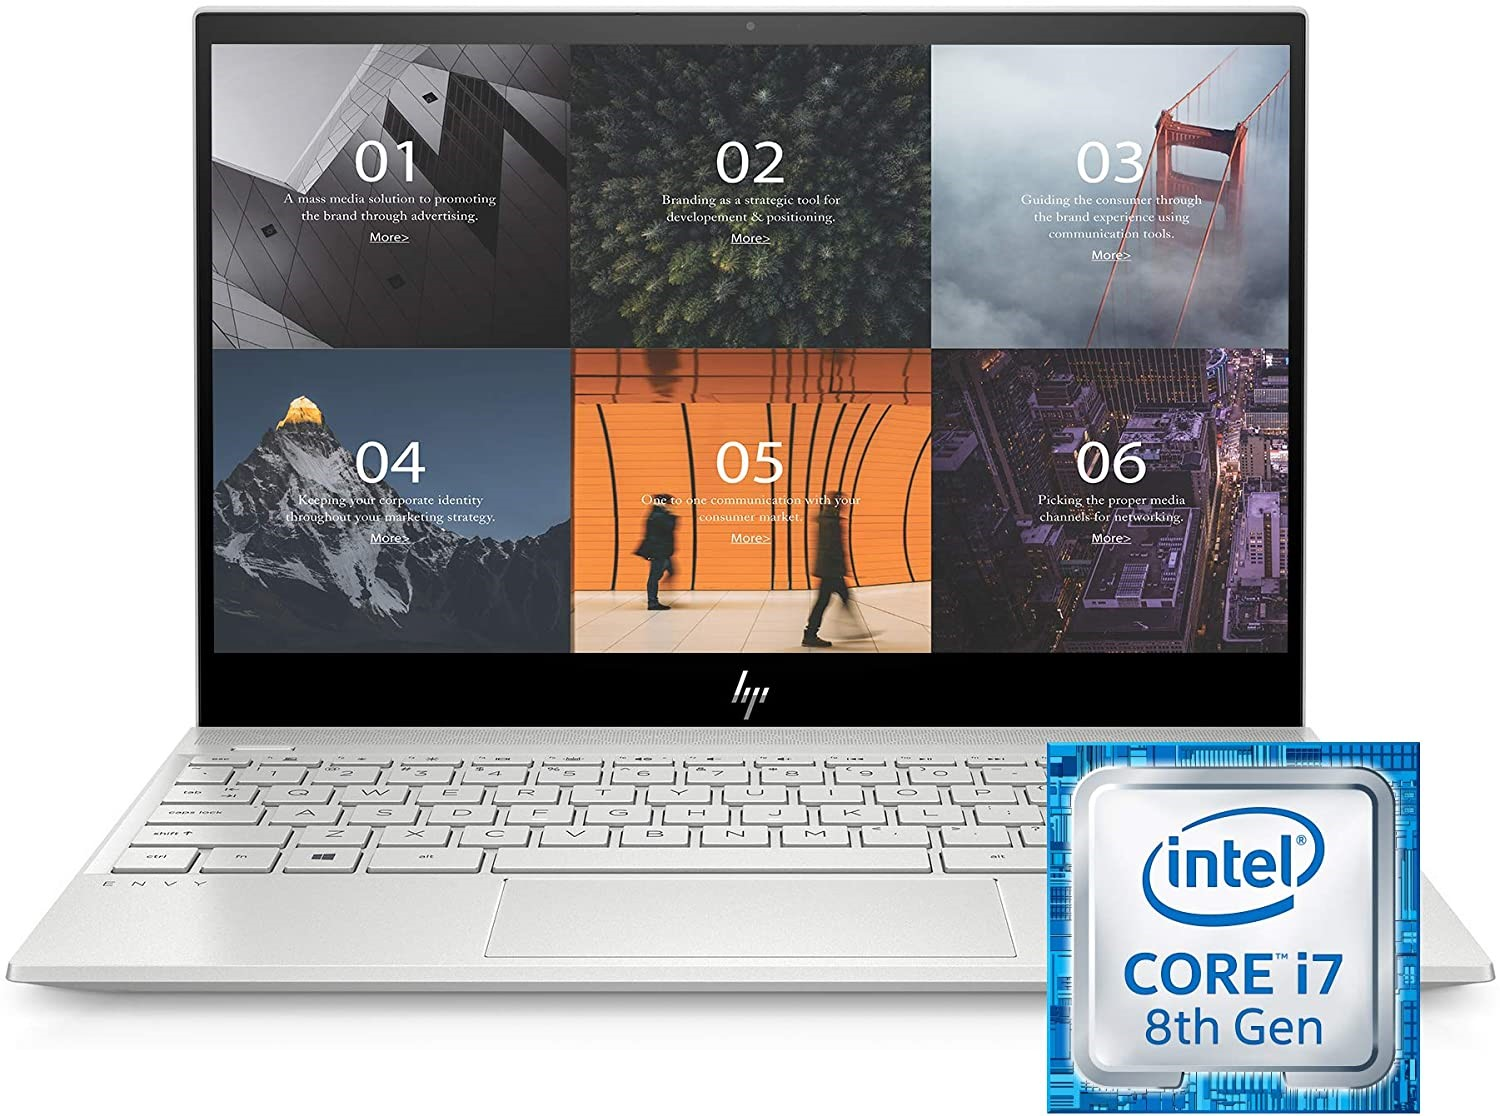 HP ENVY 13.3 Inches Thin Laptop